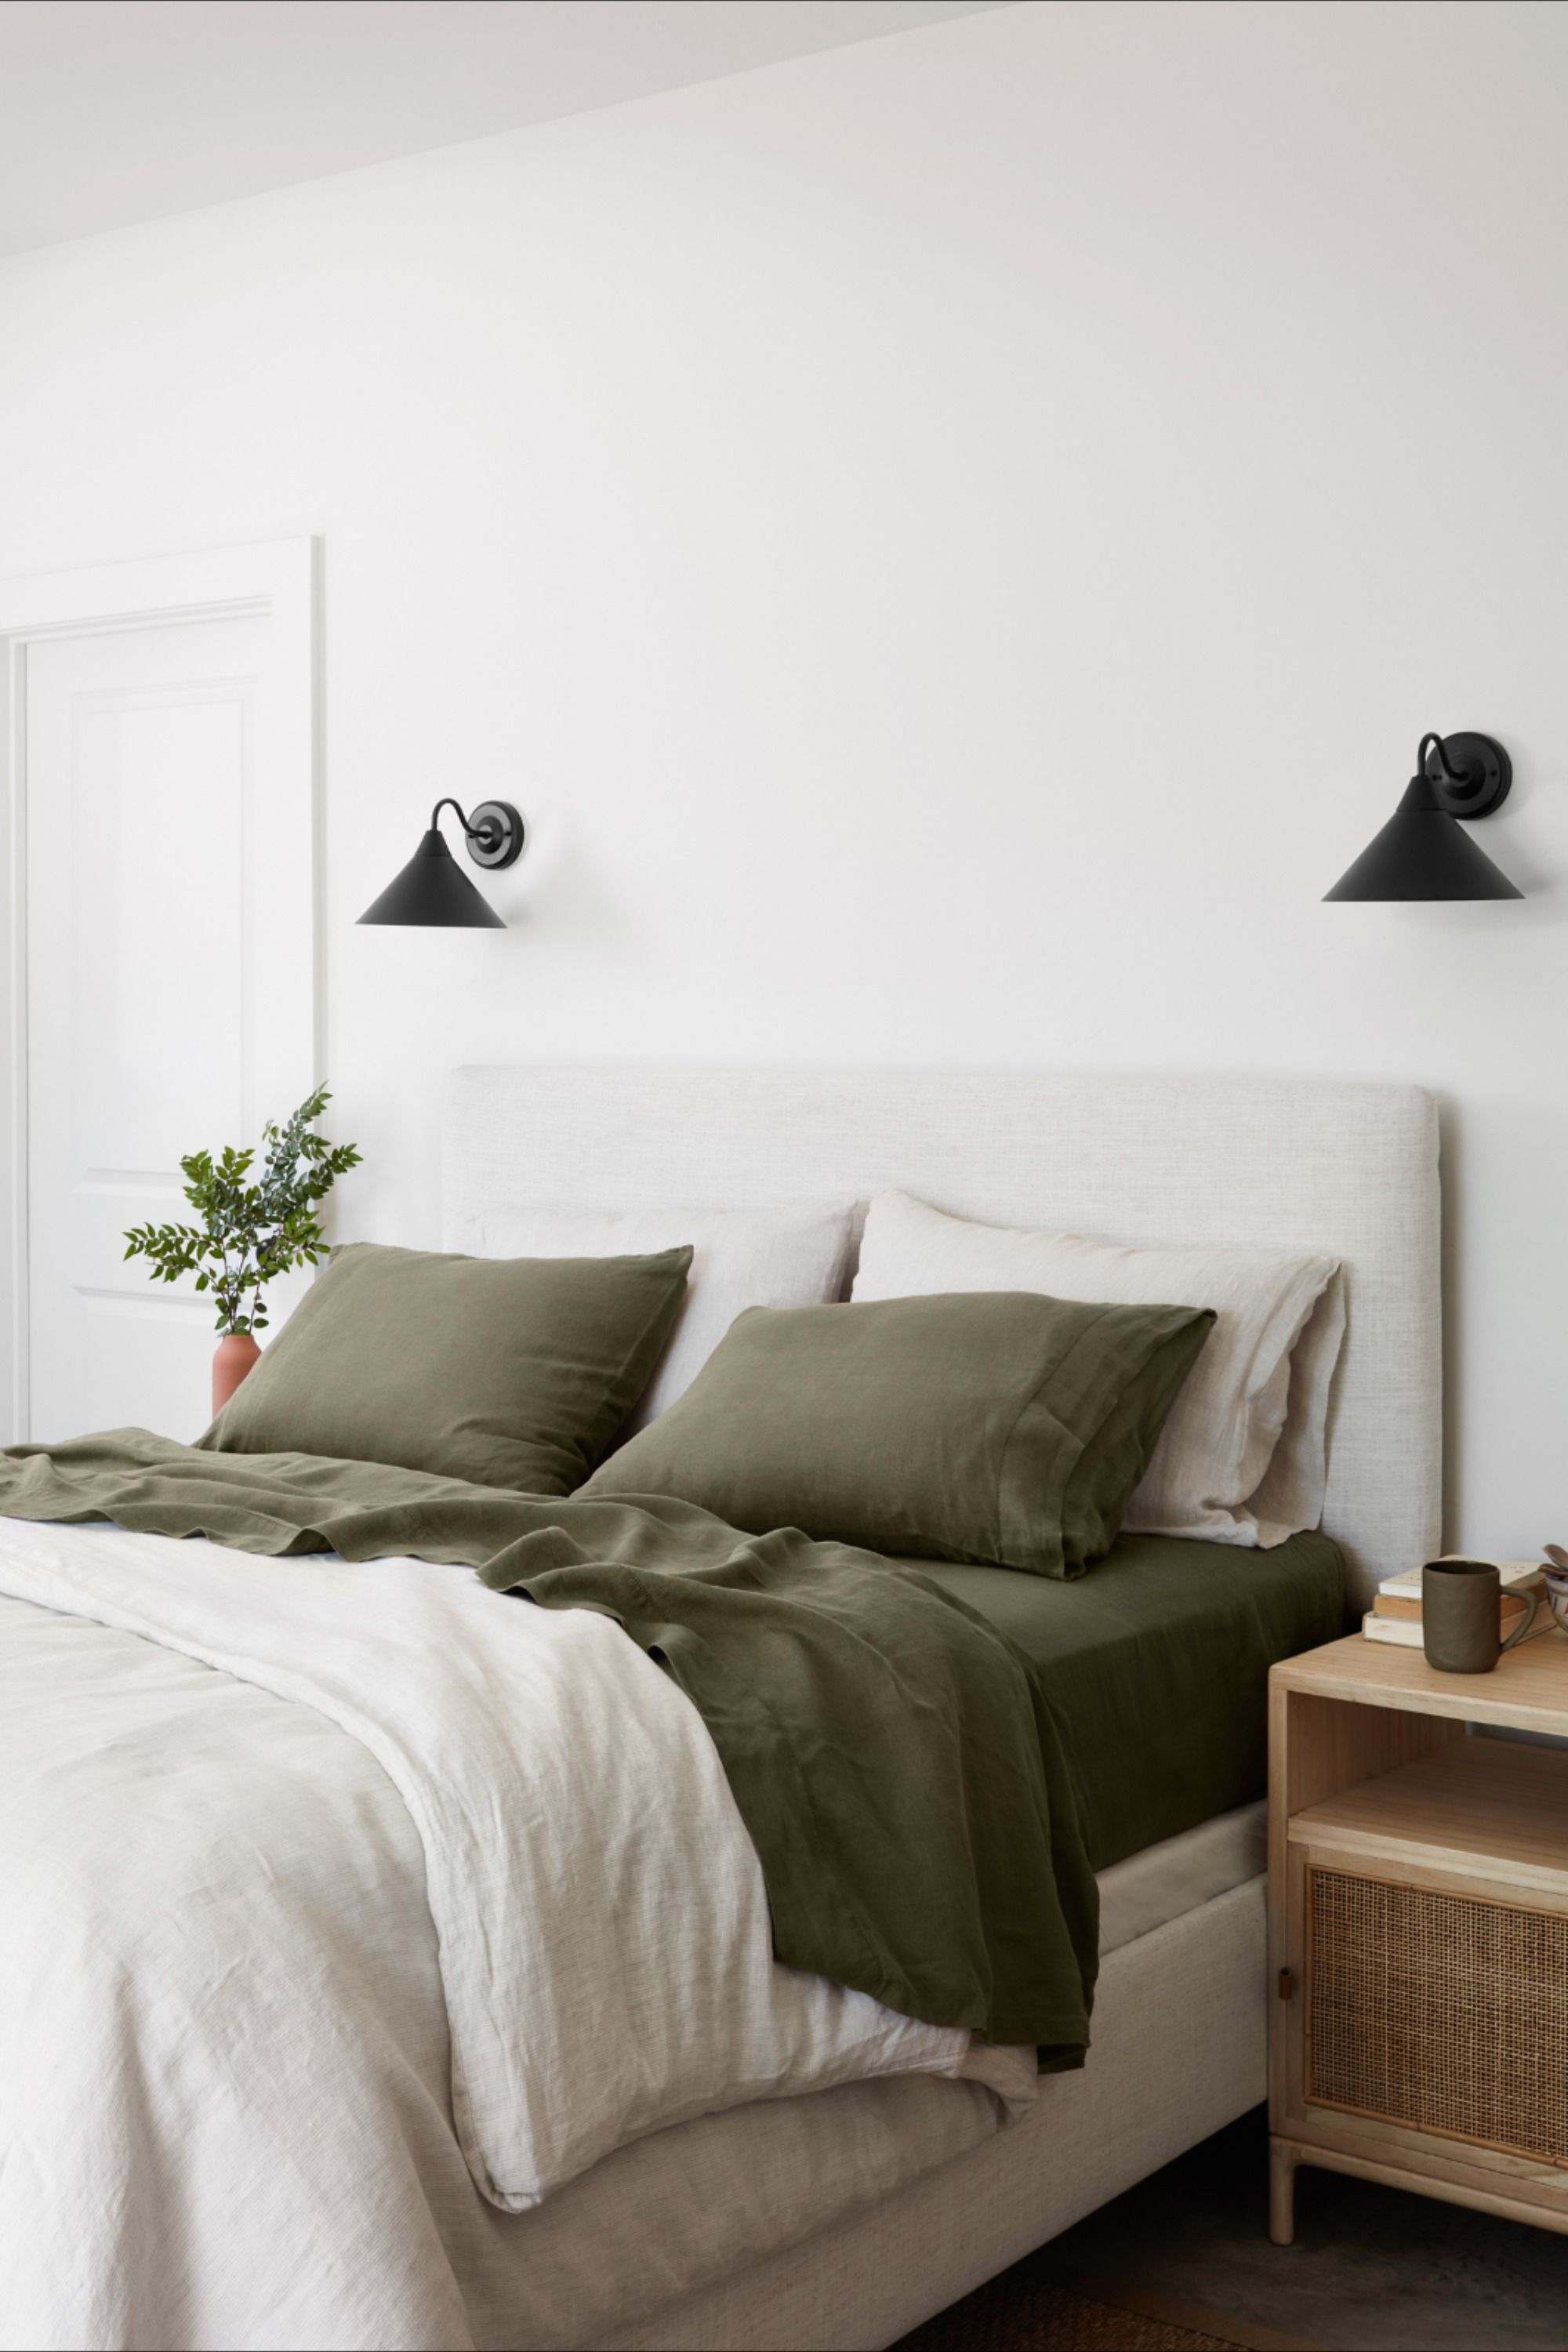 Luxe Linen Bedding in 2020 Home, Living room furniture